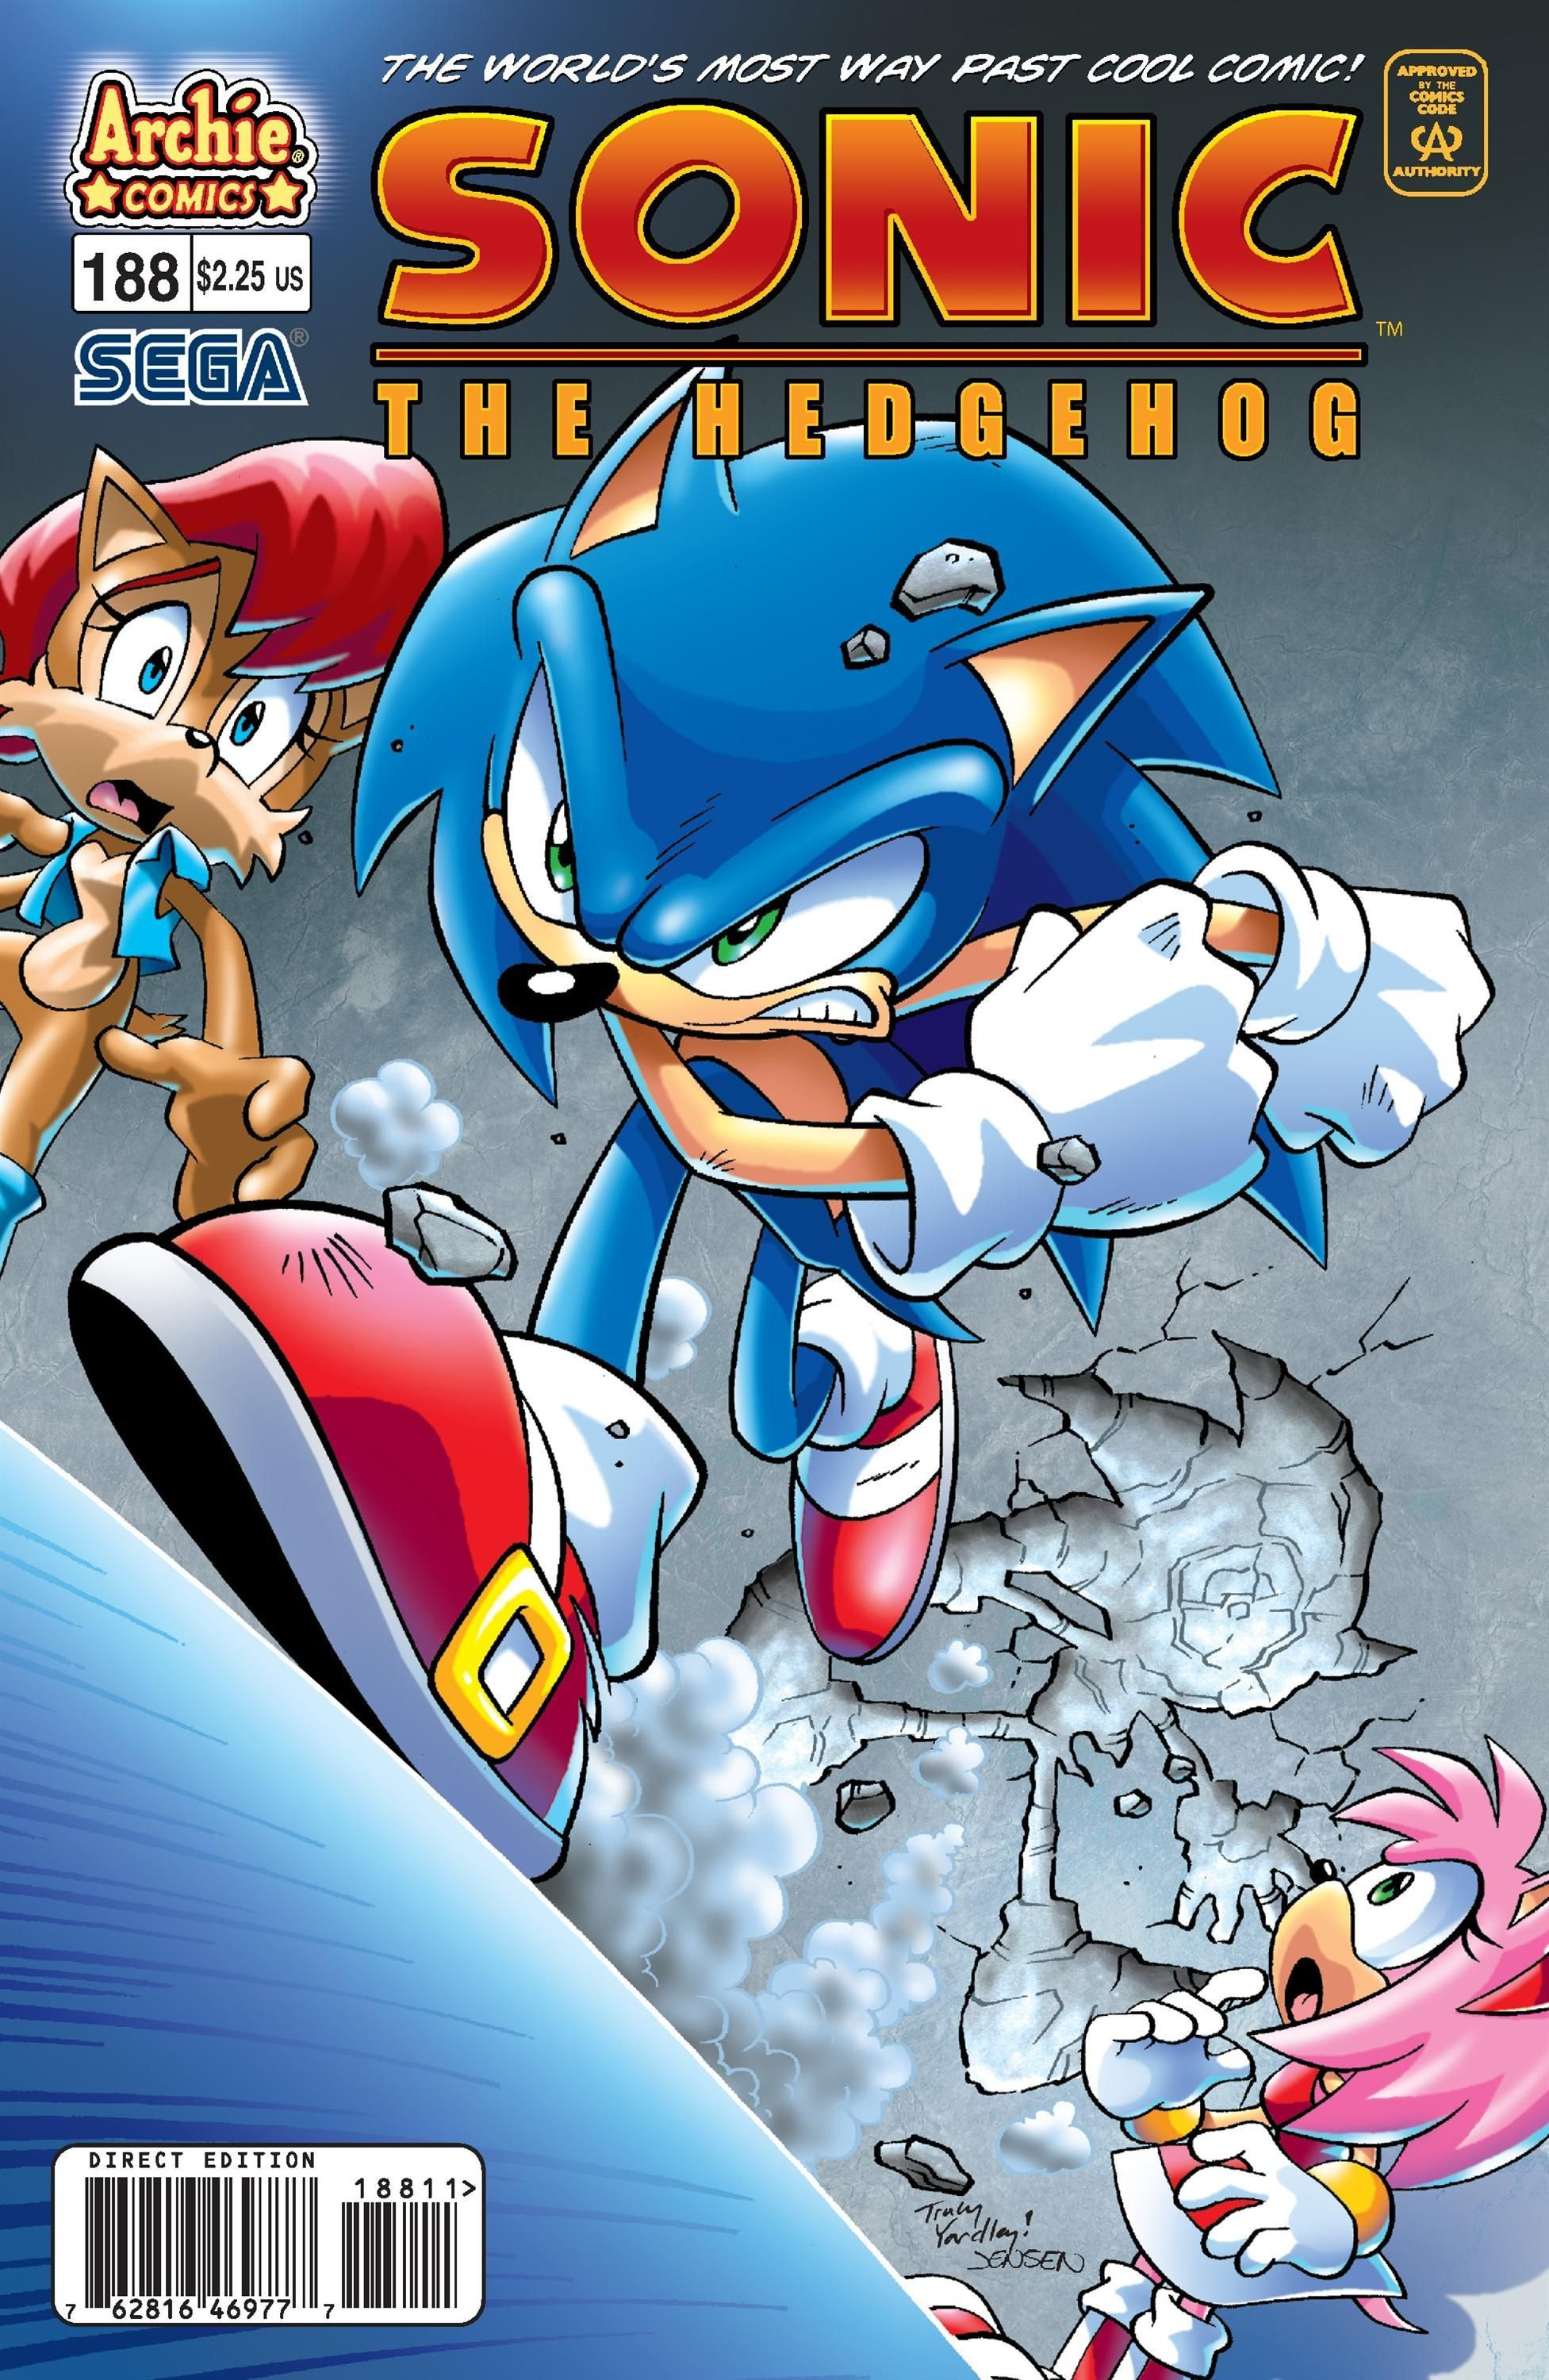 Sally acorn sonic news work pictures to pin on pinterest - Archie Sonic The Hedgehog Issue 188